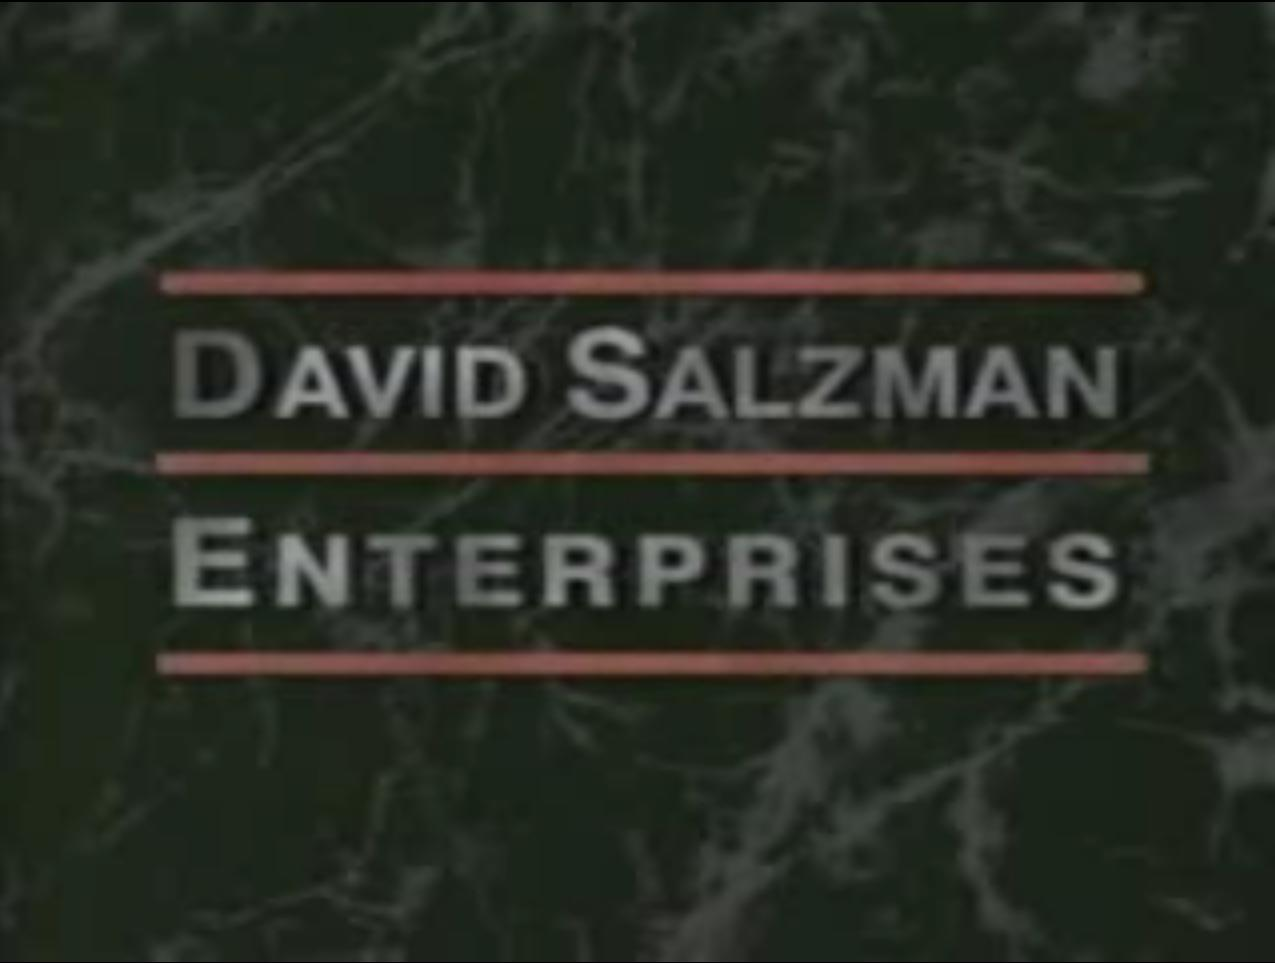 David Salzman Enterprises (1991)